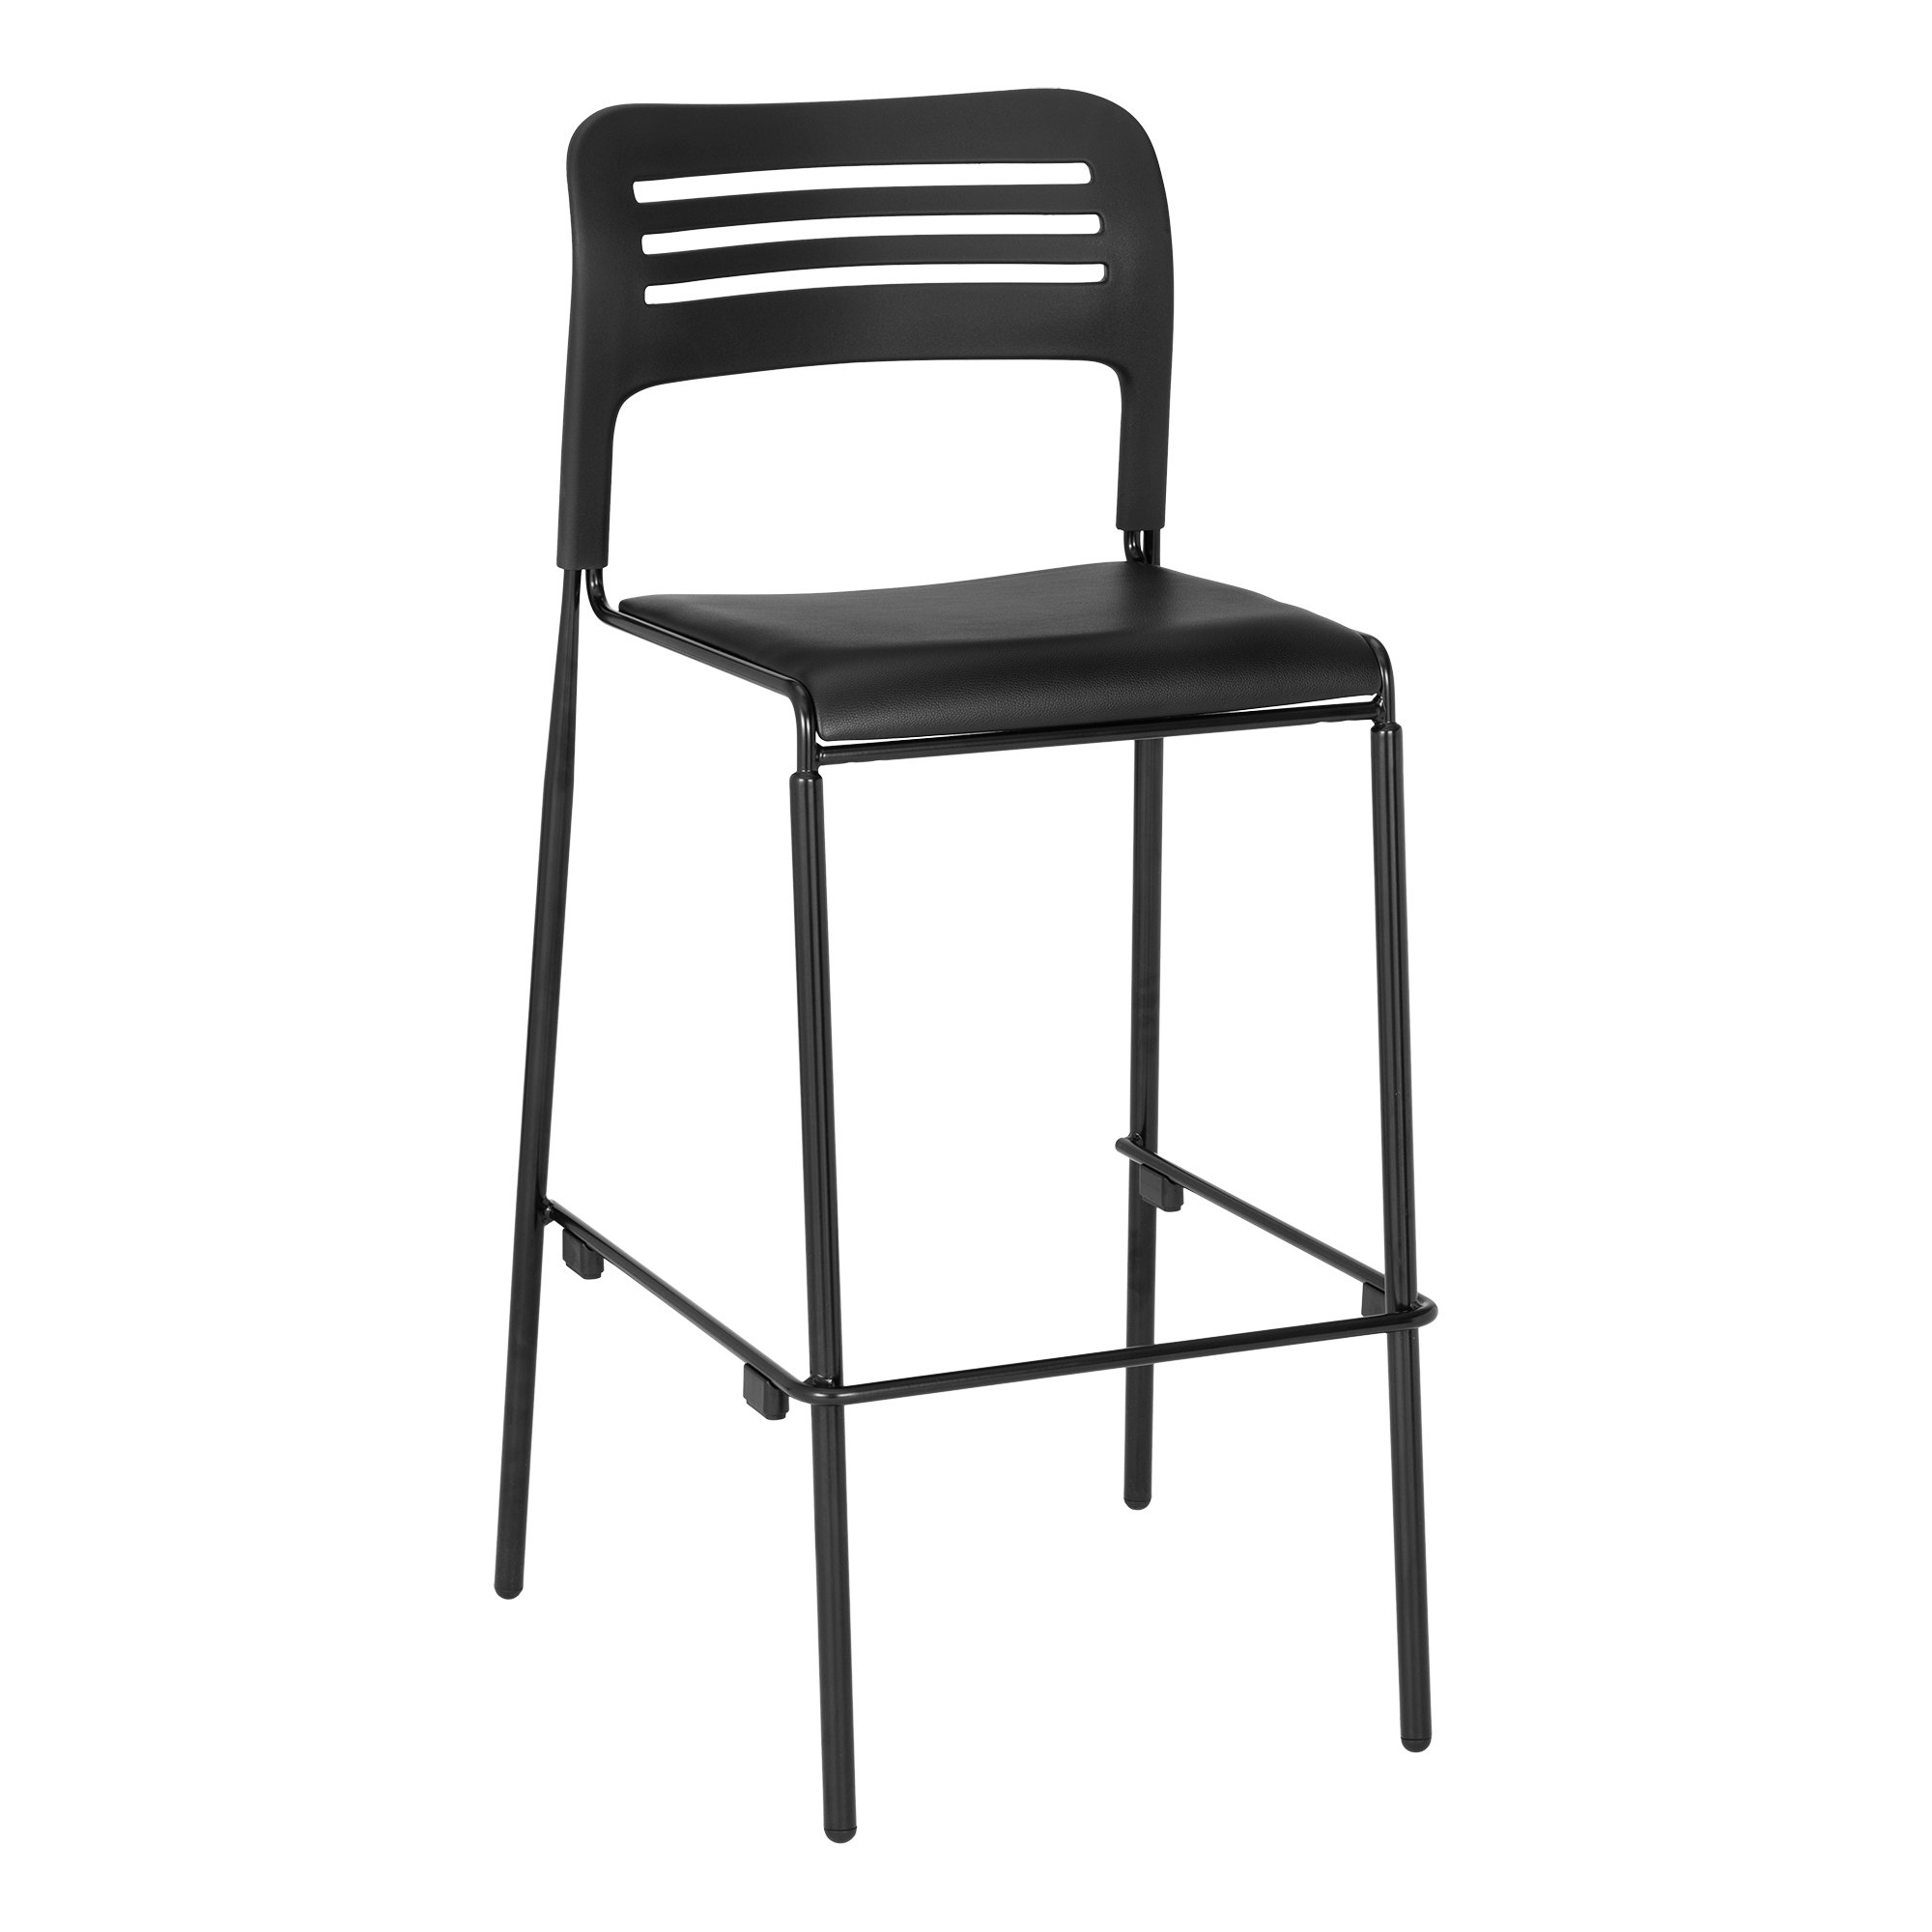 Learniture NOR-EYG1290-SO Bar Height Stackable Chair, Black/Silver (Pack of 2)